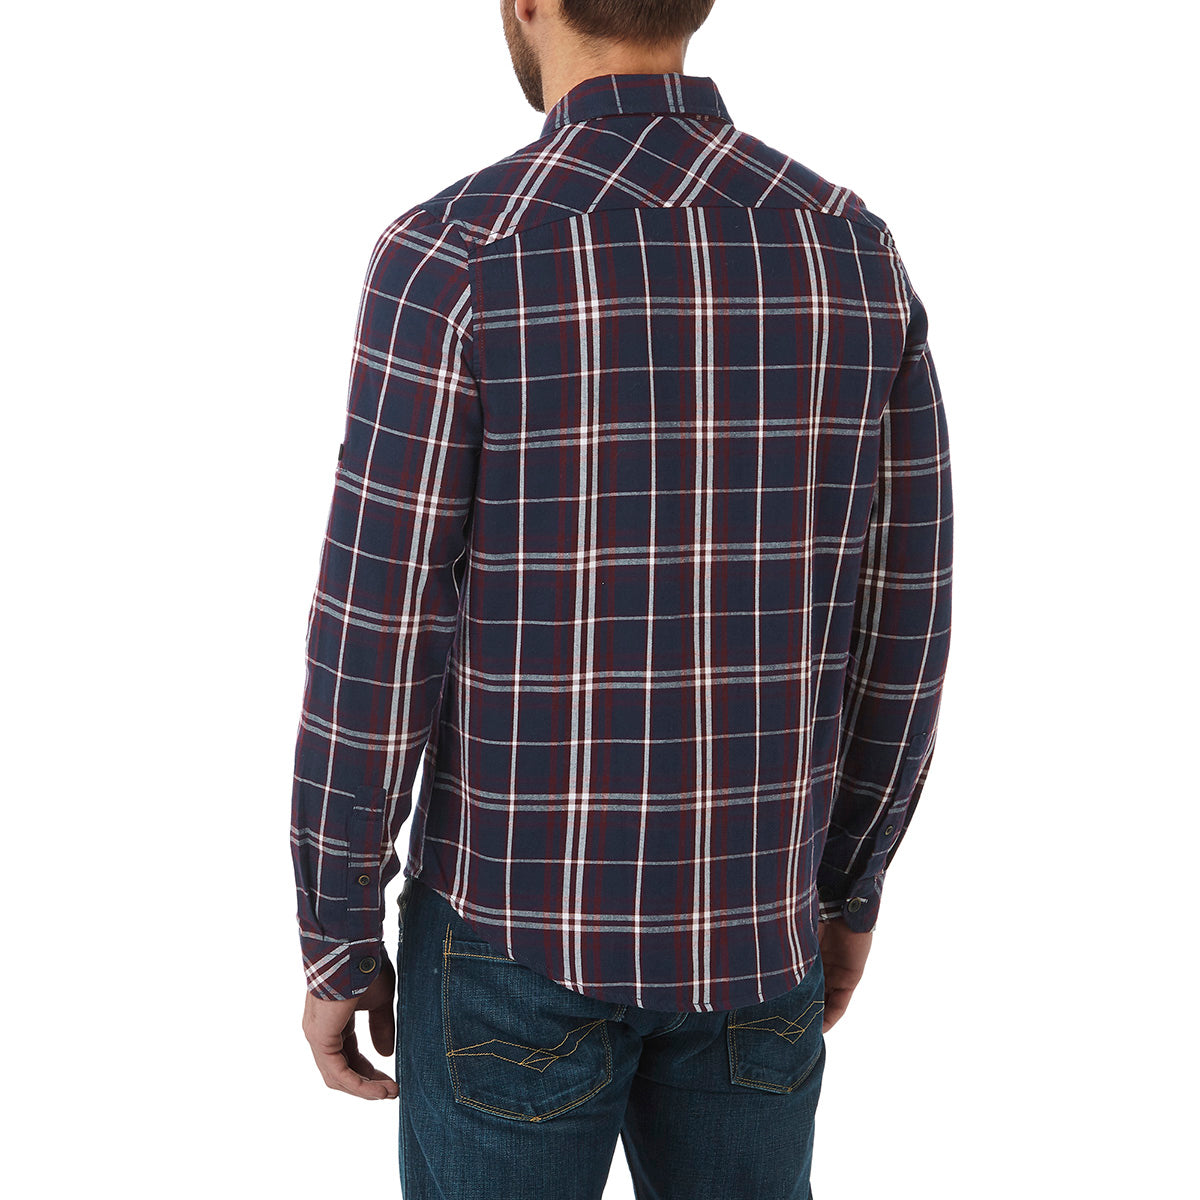 Walter Mens Long Sleeve Flannel Shirt - Navy Check image 4